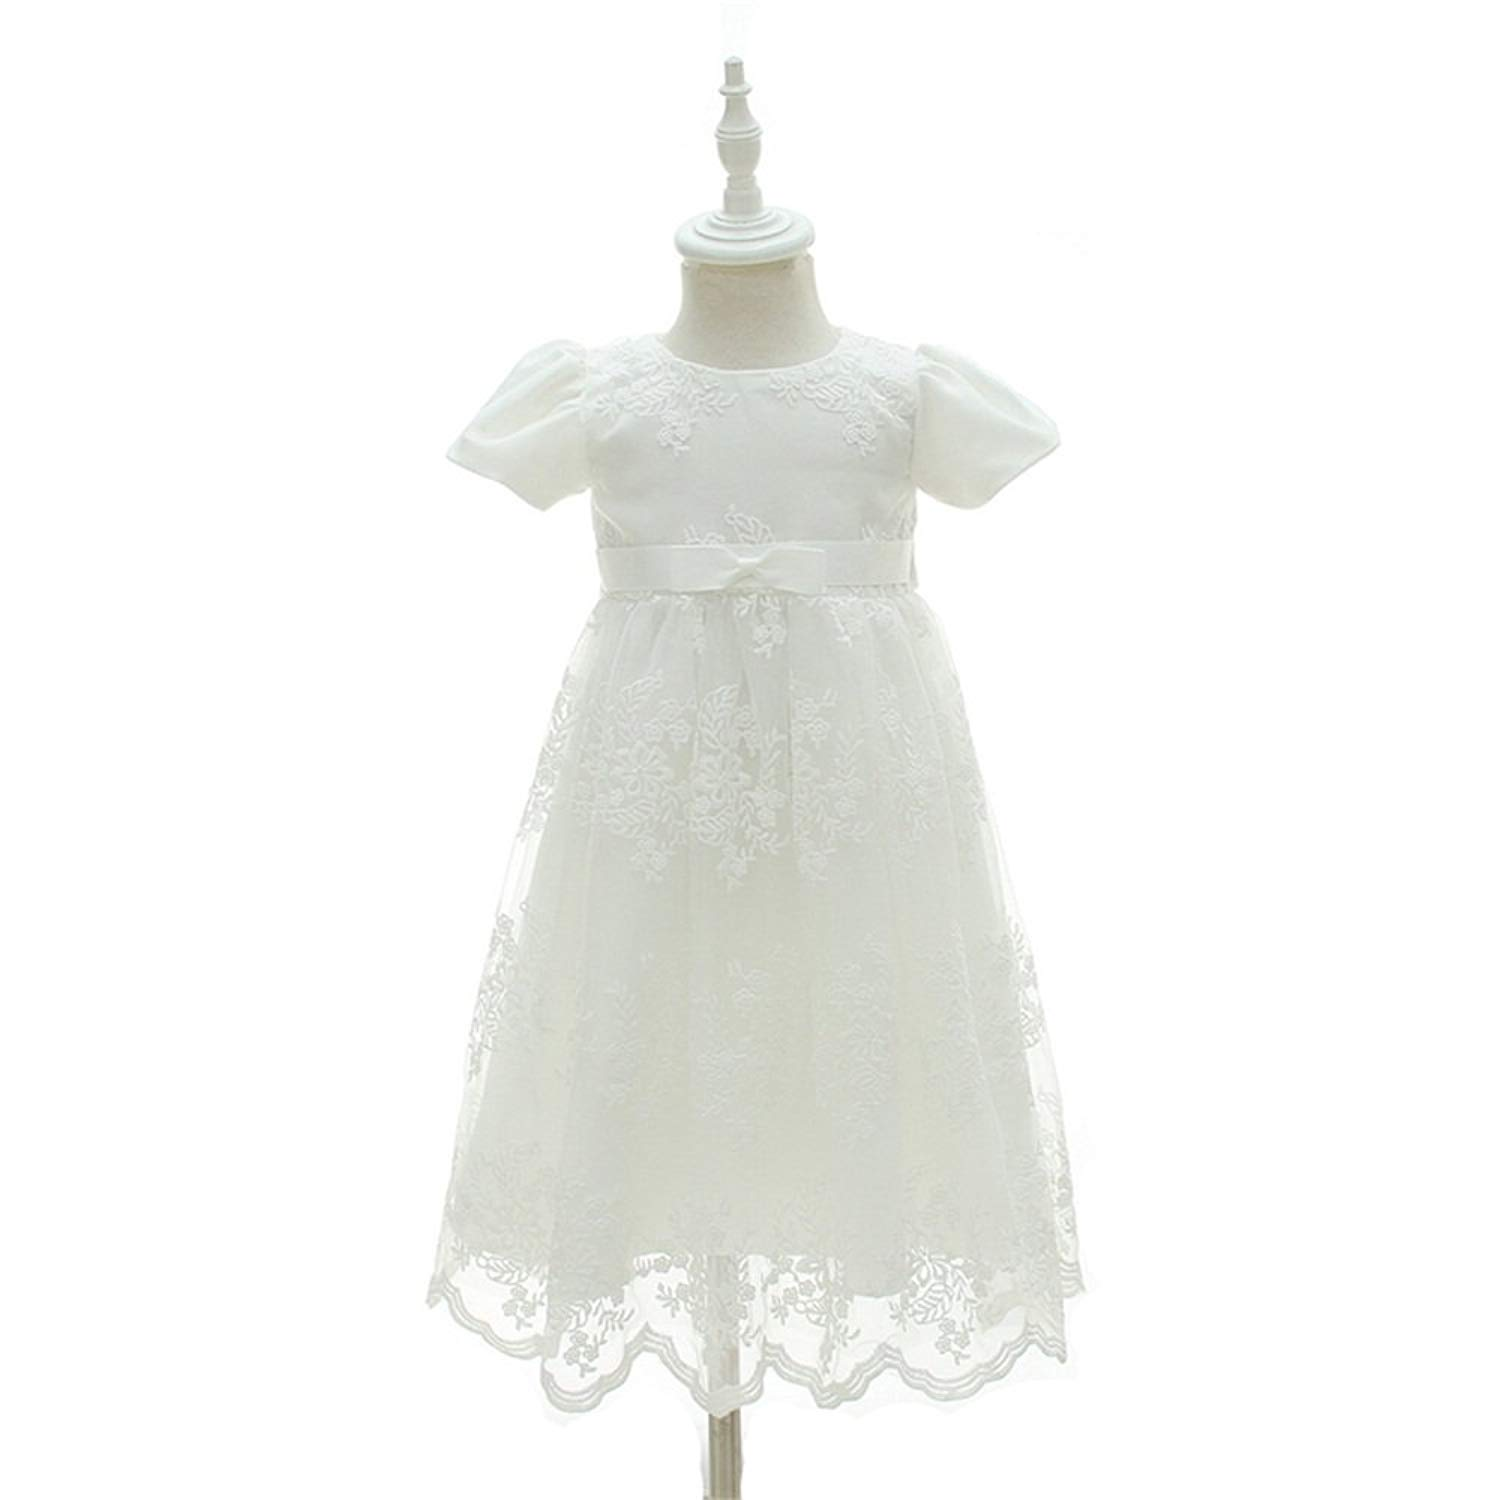 a9d7e8d2b6 Get Quotations · EsTong Newborn Baby Girls Baptism Christening Gown Flower  Gril Princess Dress